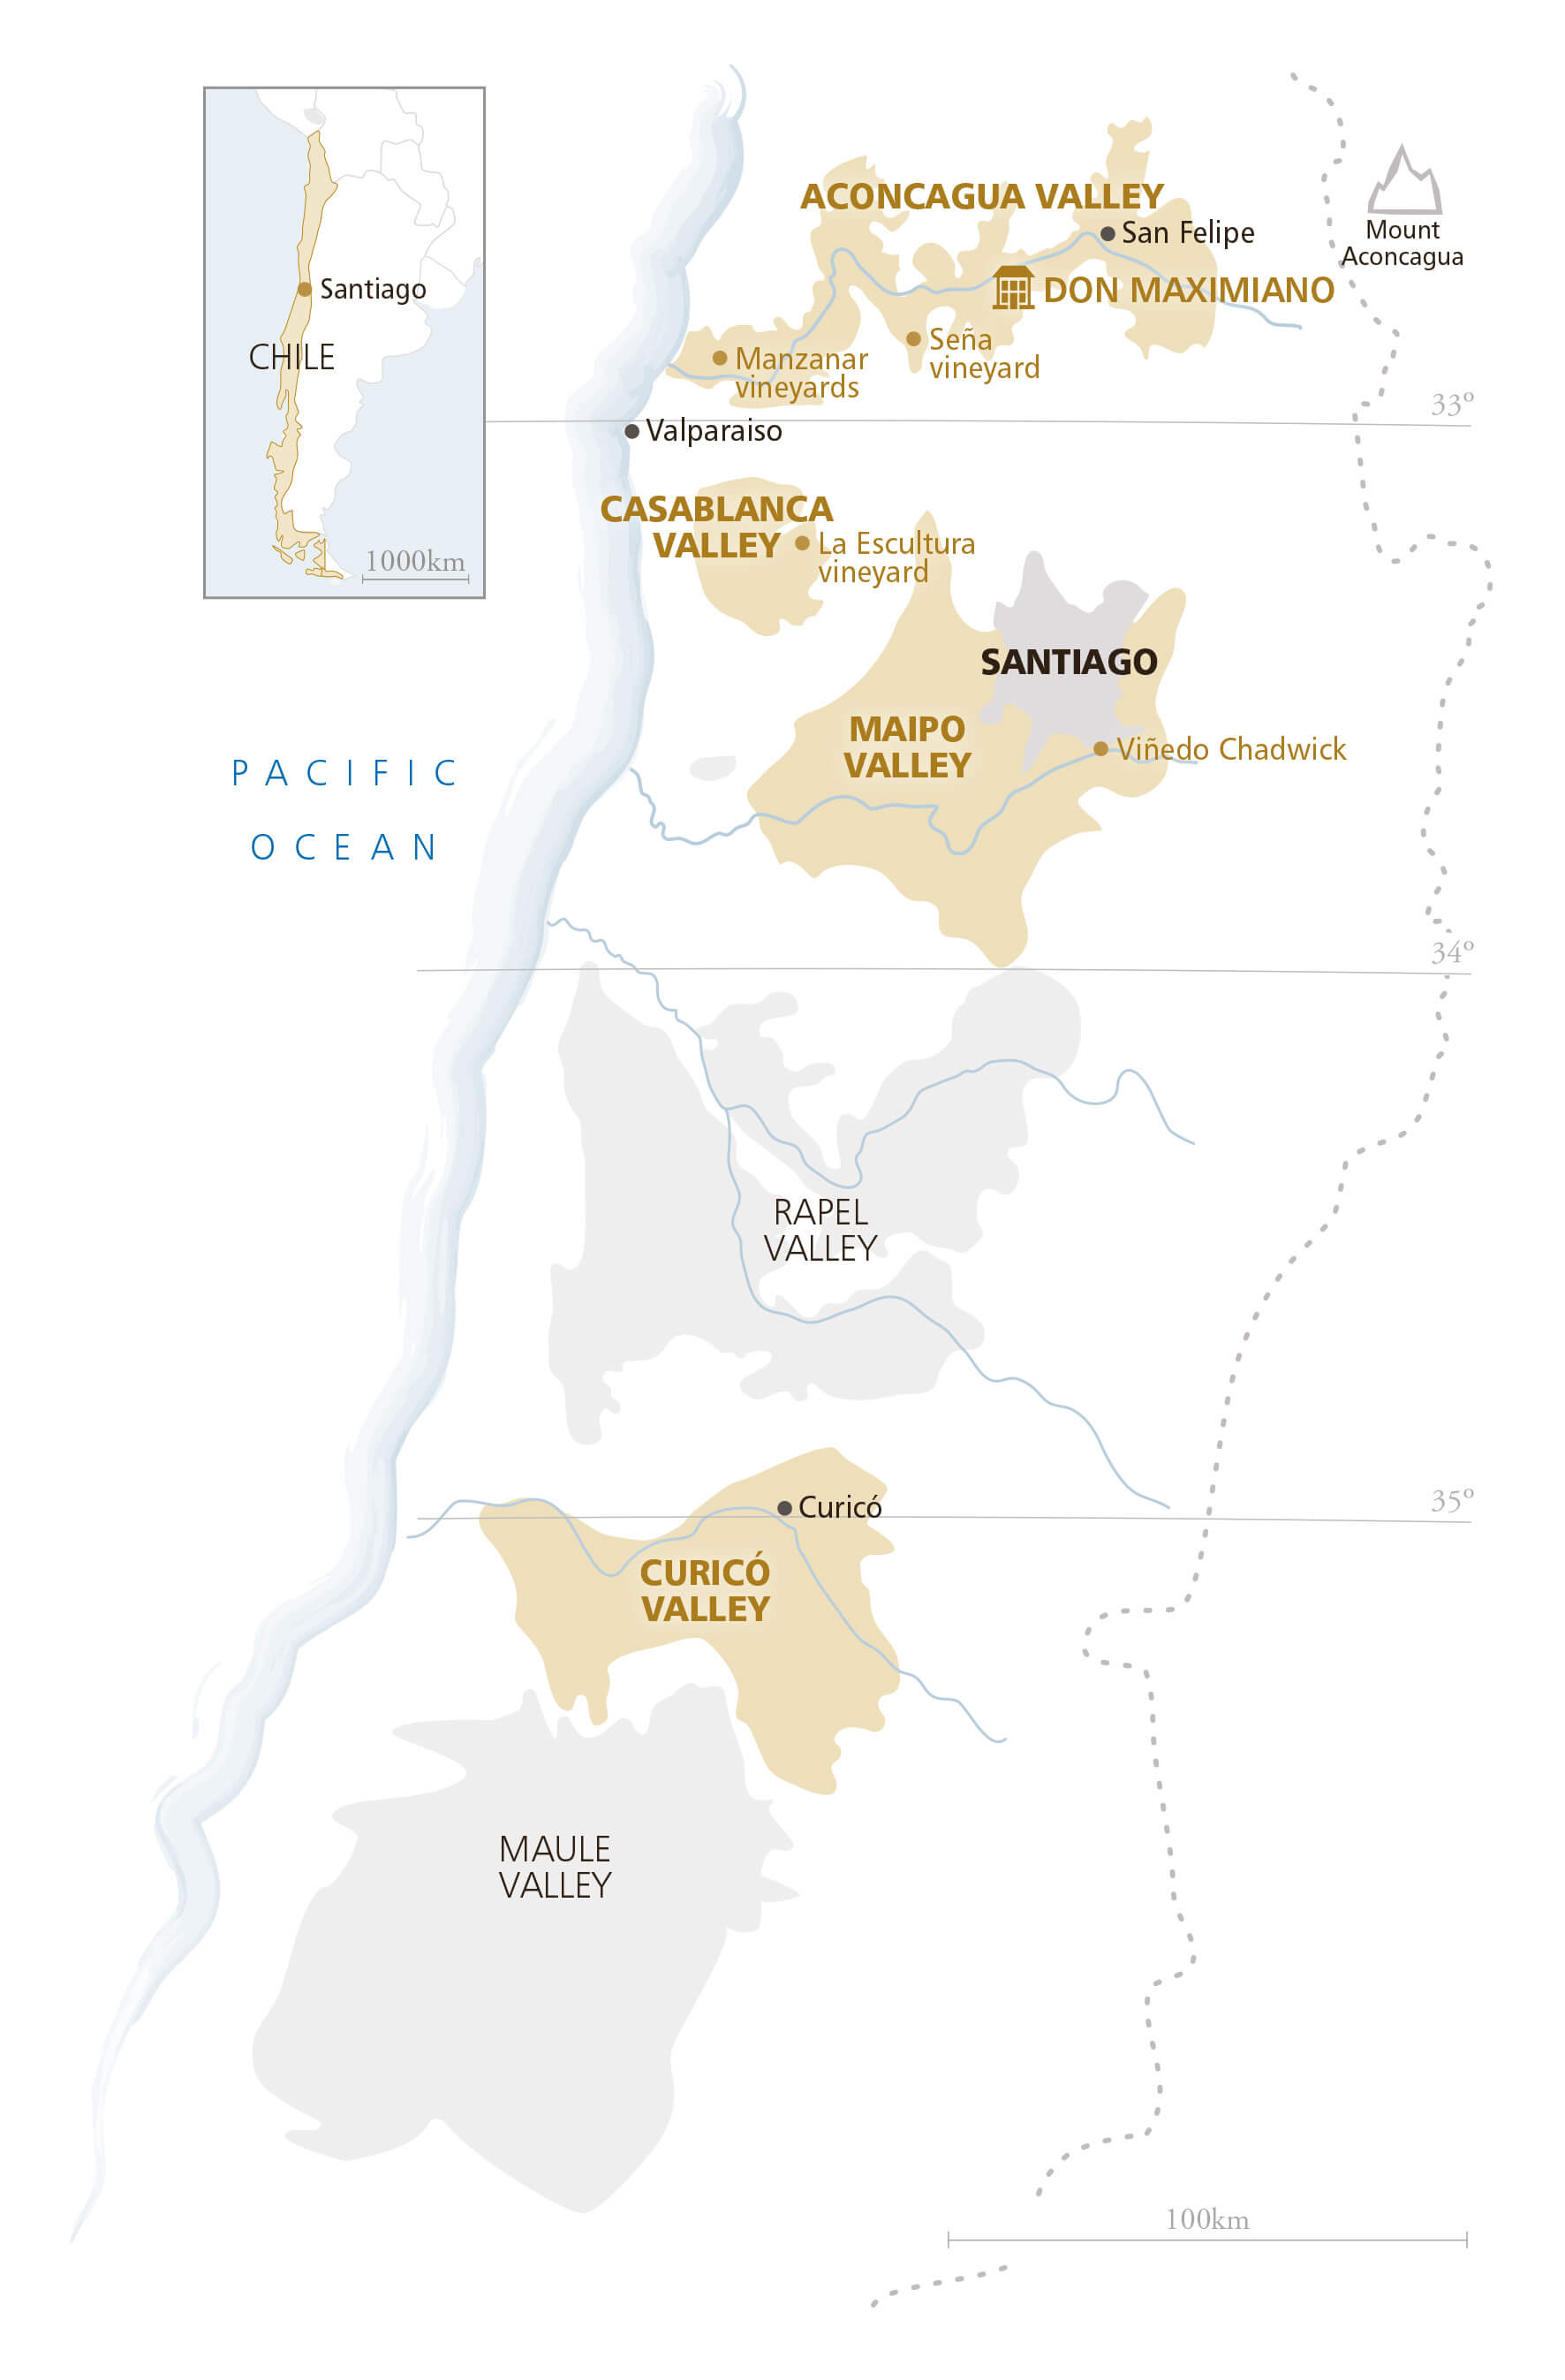 Central Valleys region of Chile indicating location of the Aconcagua vineyards and winery